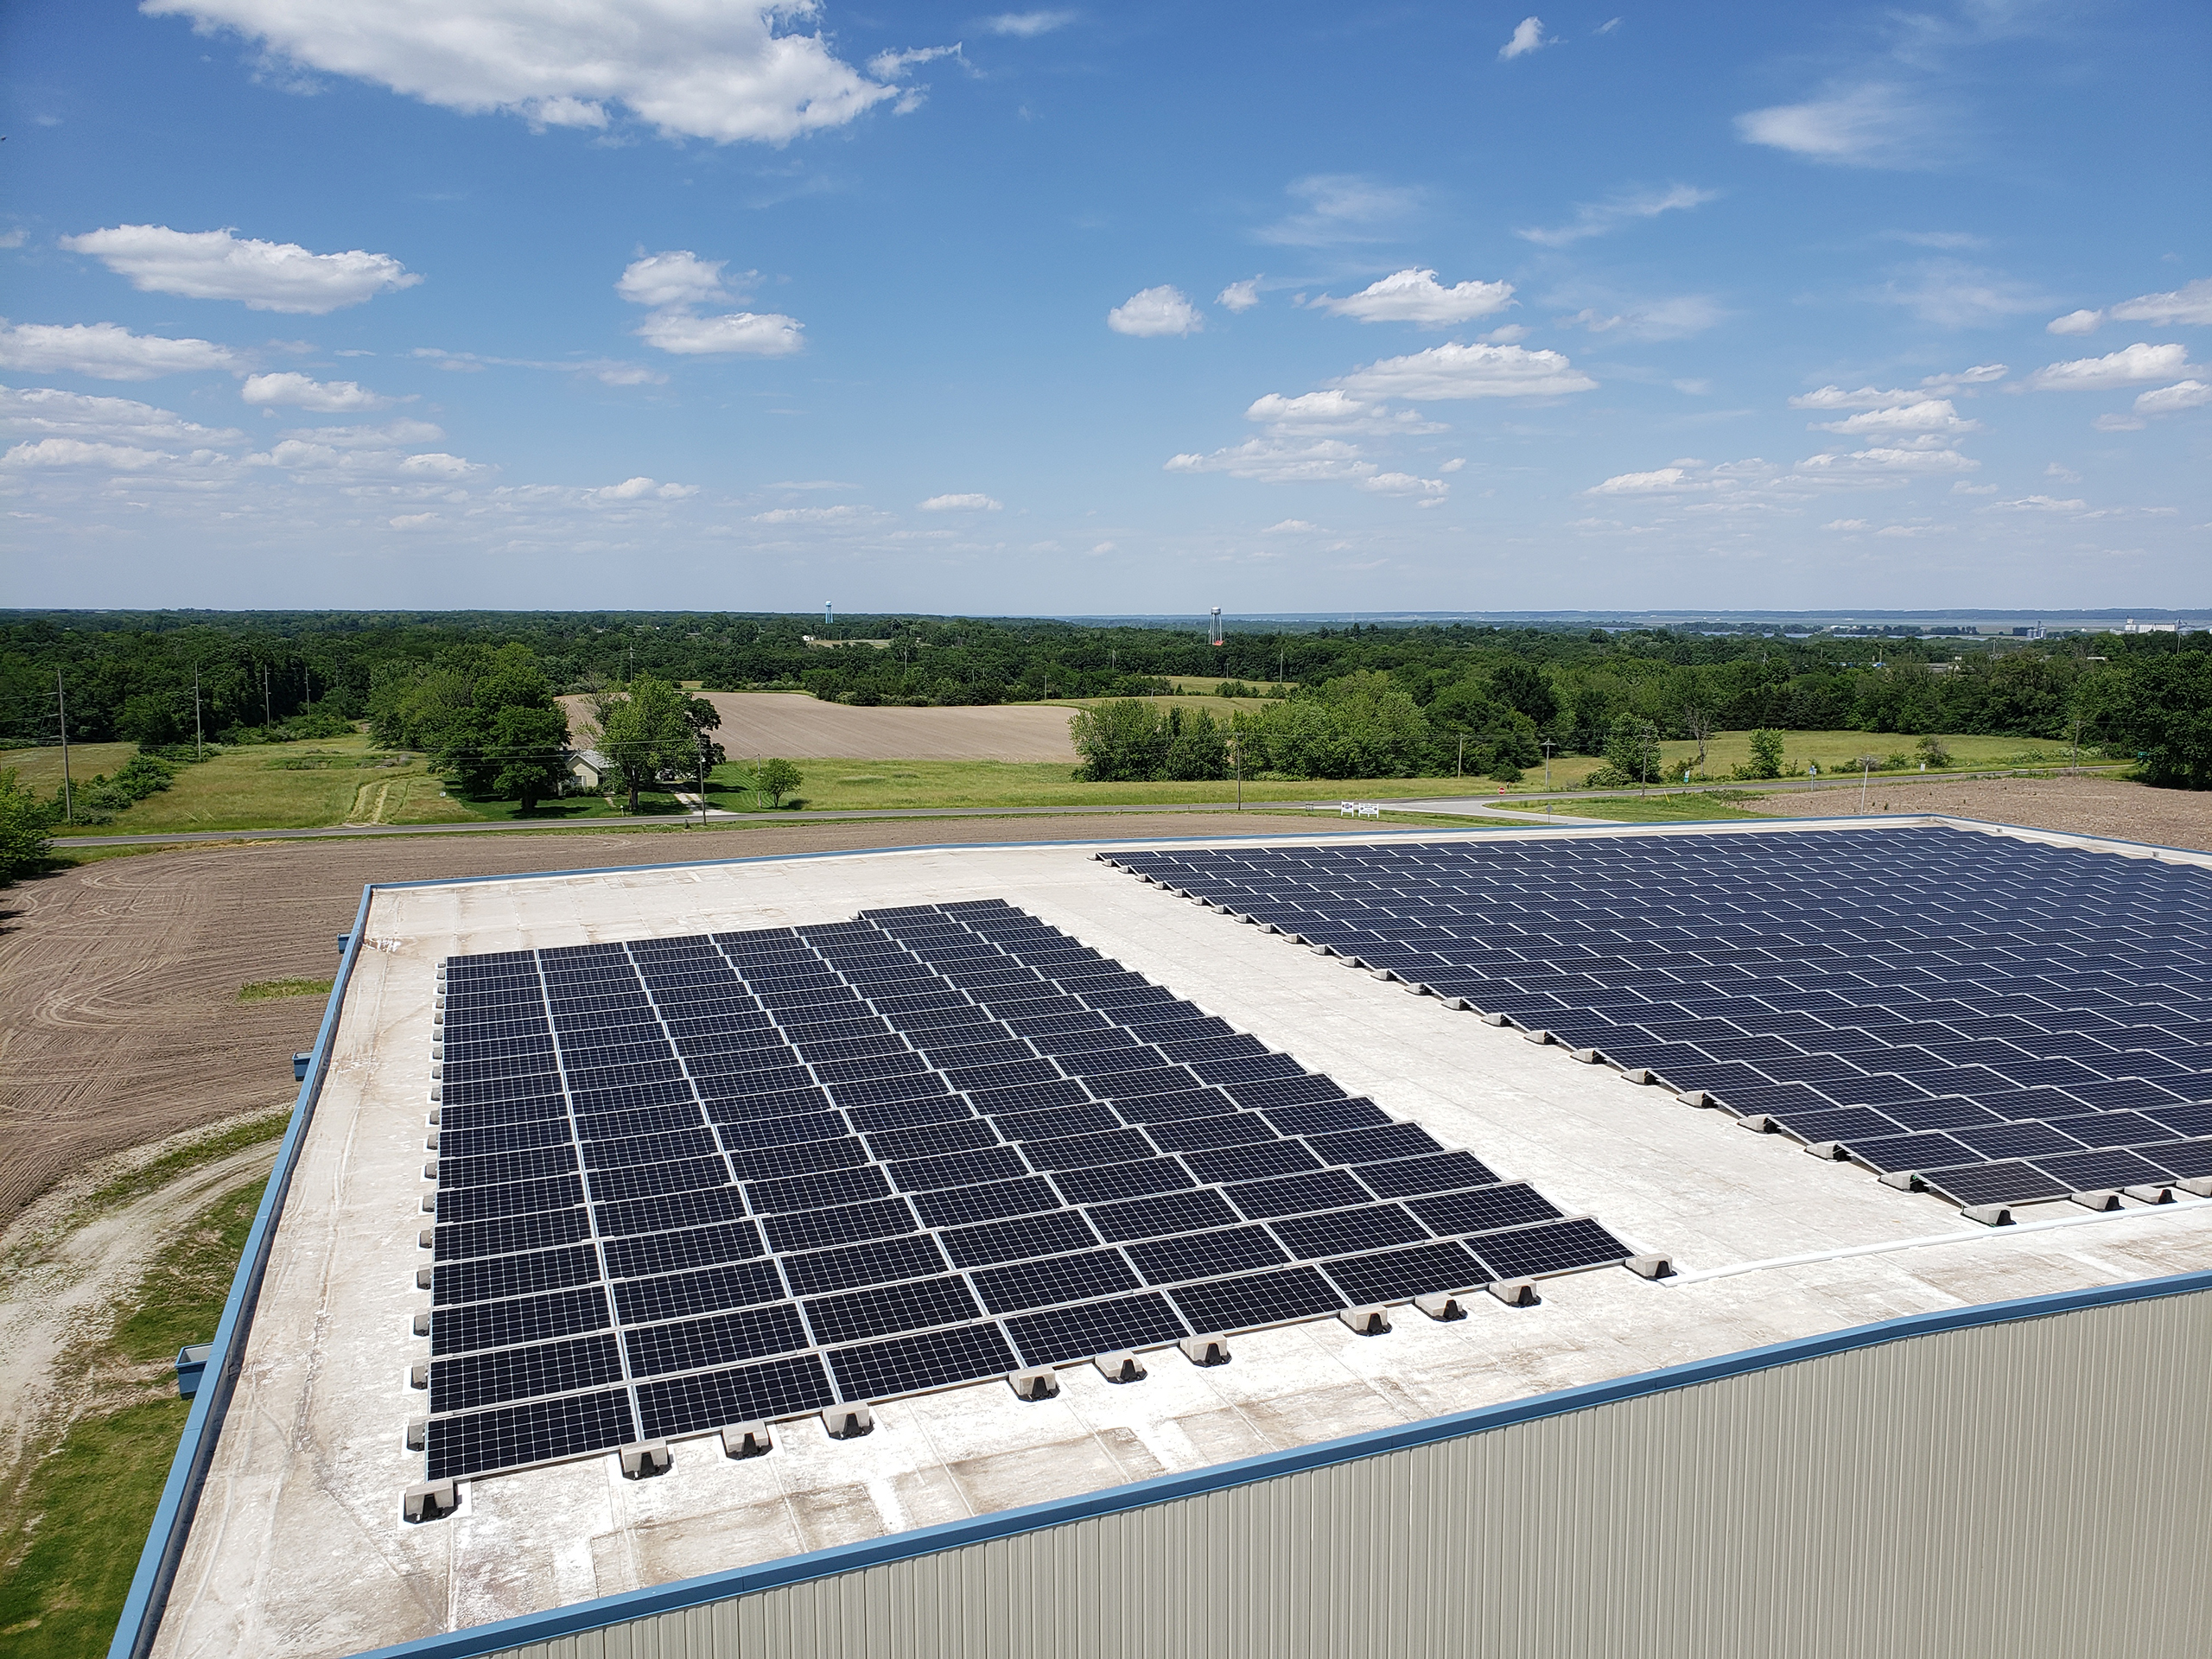 A flat commercial roof is covered with solar panels in perfect lines and rows. A walk-way divides the large solar system install. A bright blue sky with a few scattered puffy clouds can be seen with a rural tree line in the distance.